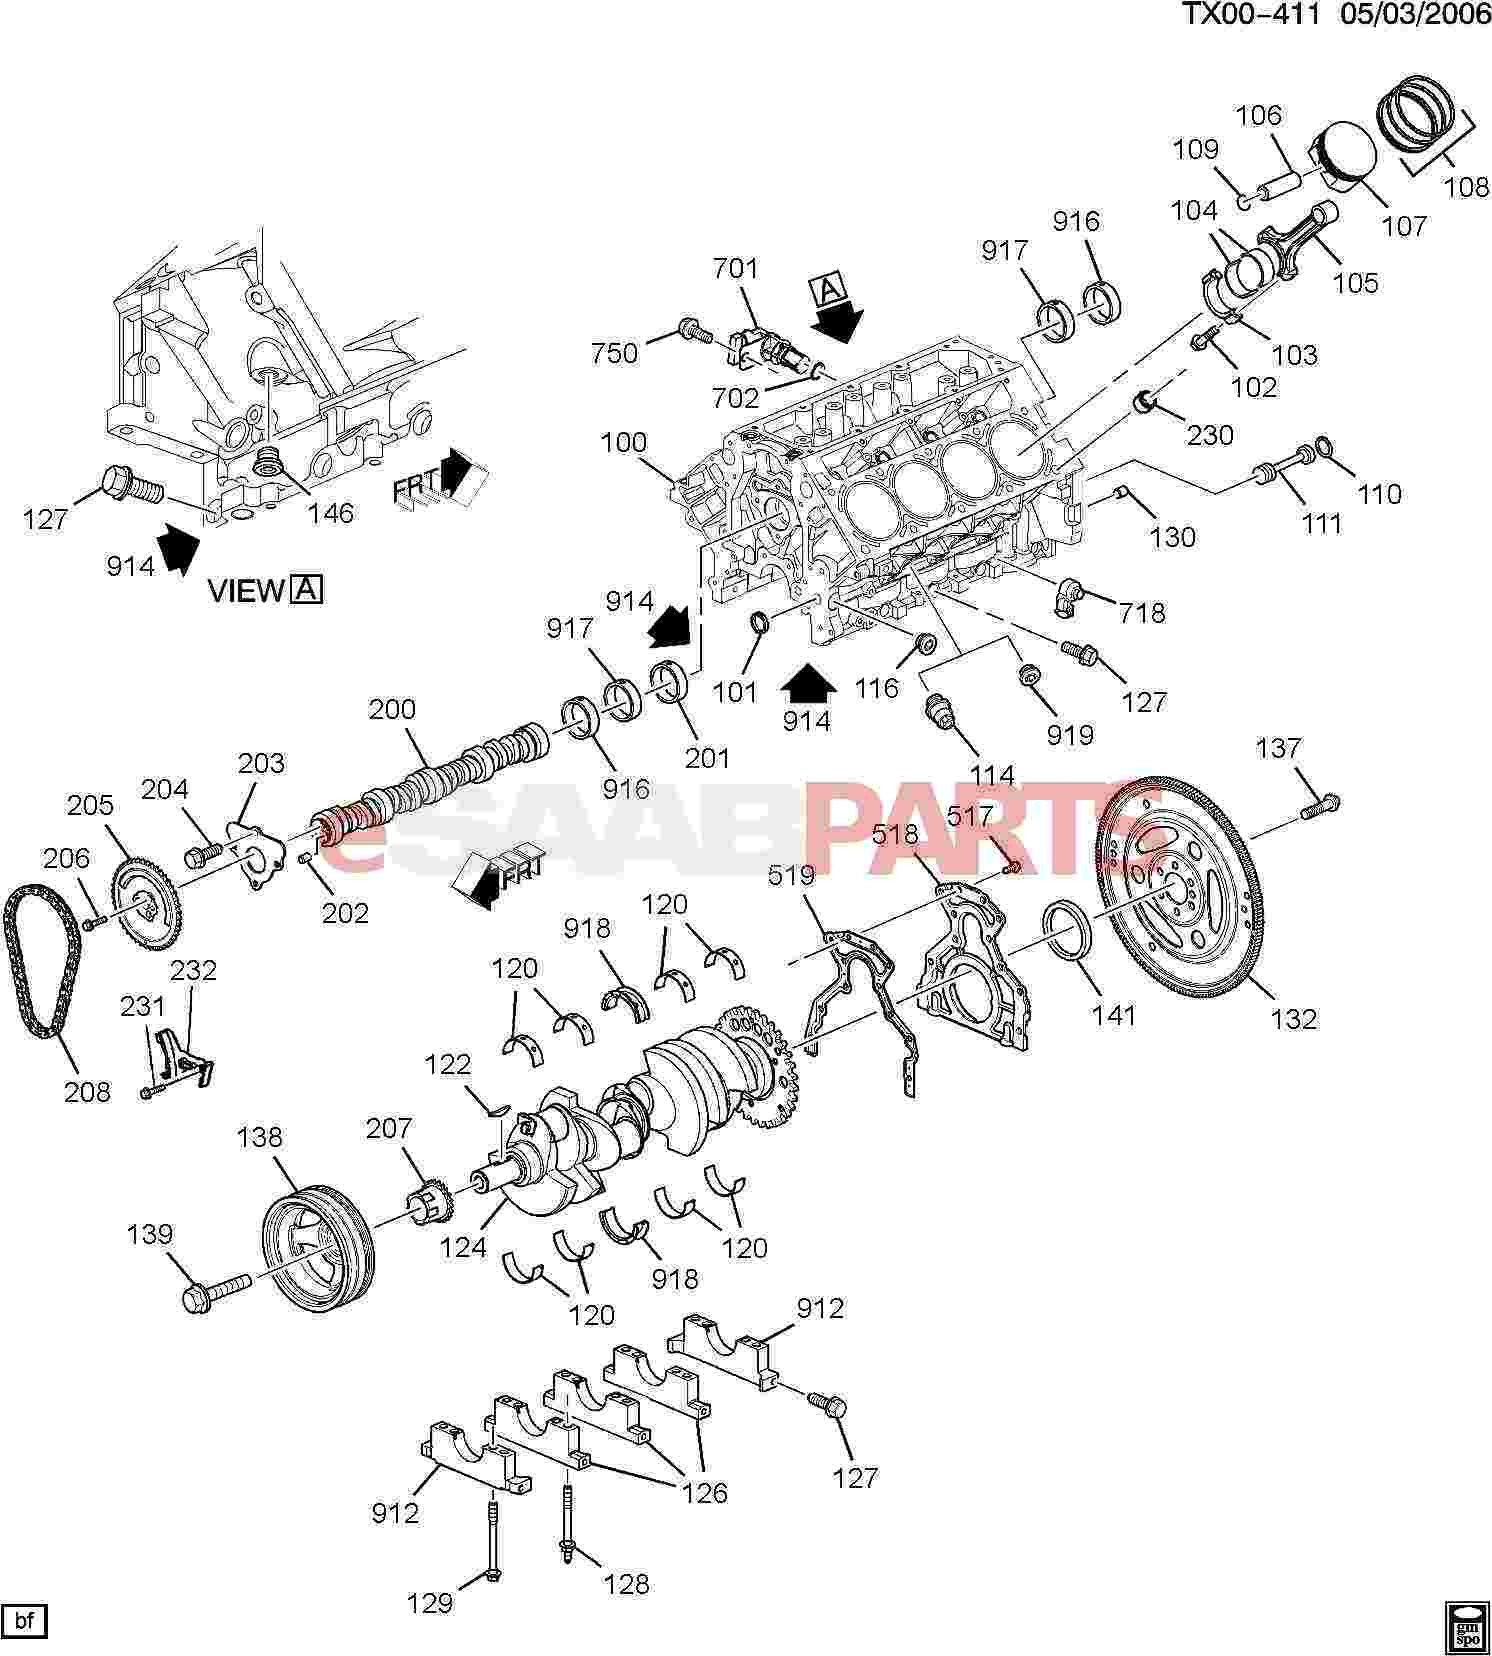 Engine Block Parts Diagram